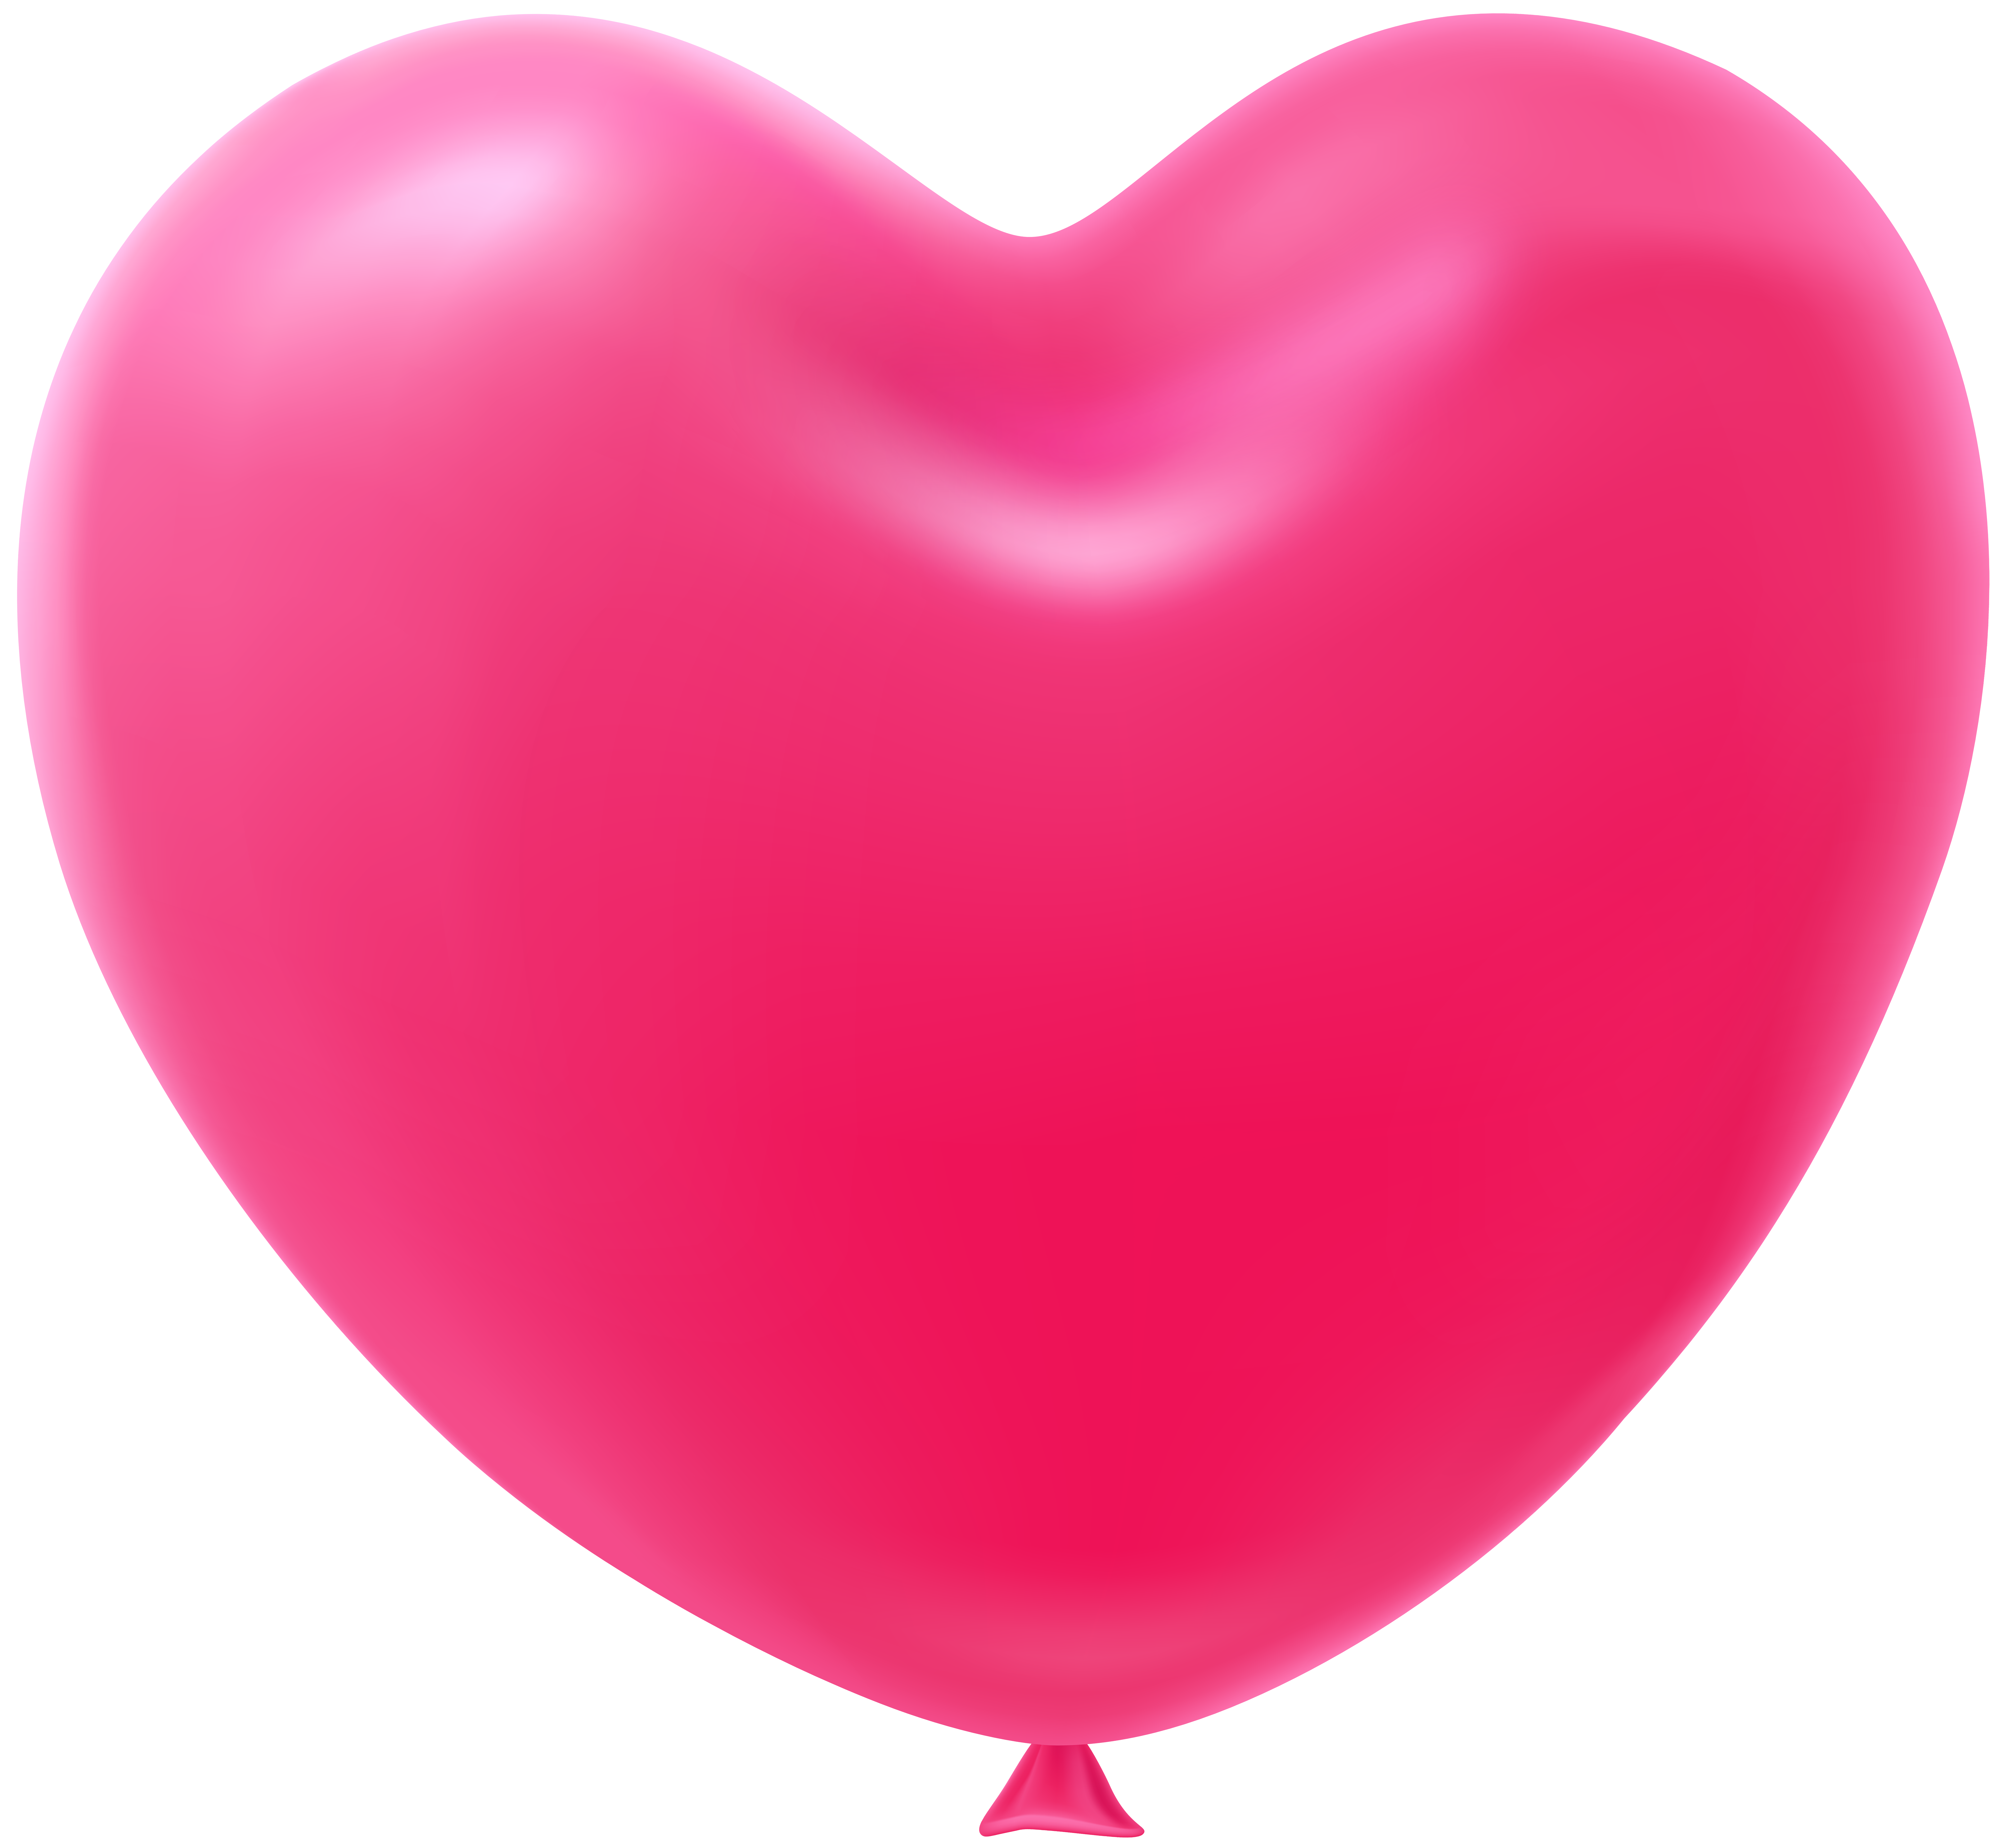 Heart shaped clipart image black and white stock Heart Shape Balloon Pink Transparent Clip Art Image | Gallery ... image black and white stock